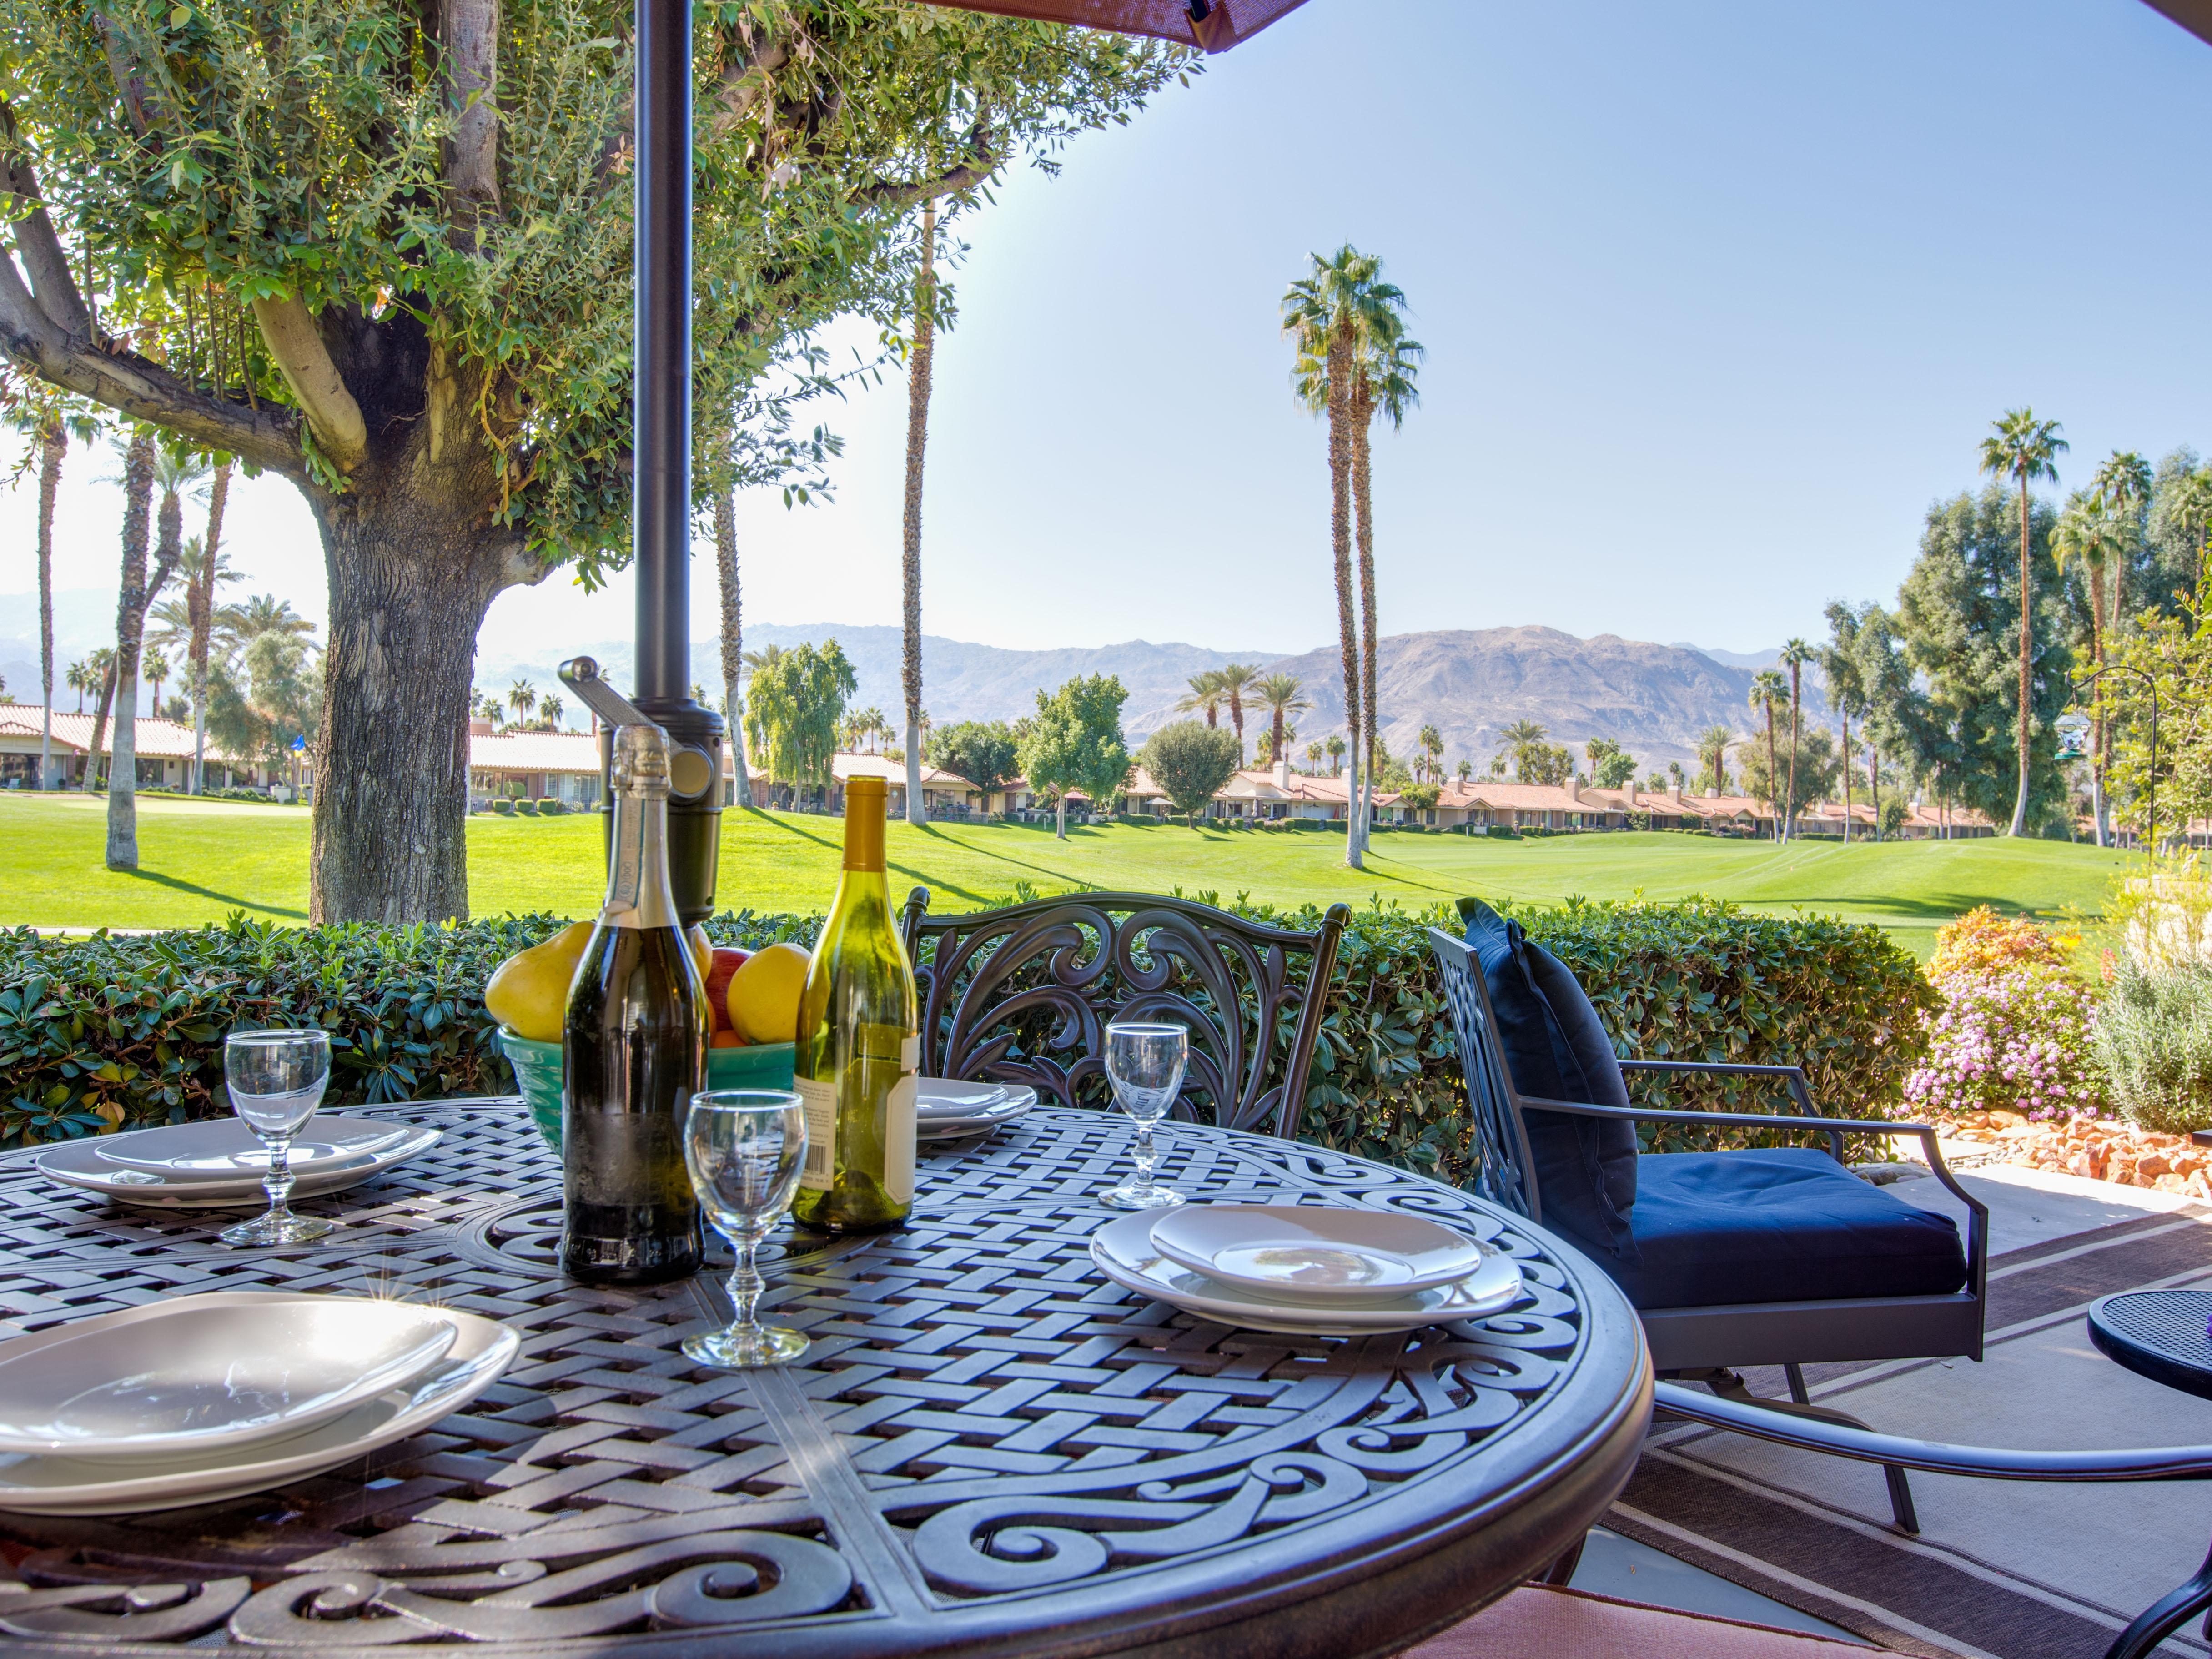 Property Image 1 - Large Luxury Condo with Resort Amenities in Palm Desert